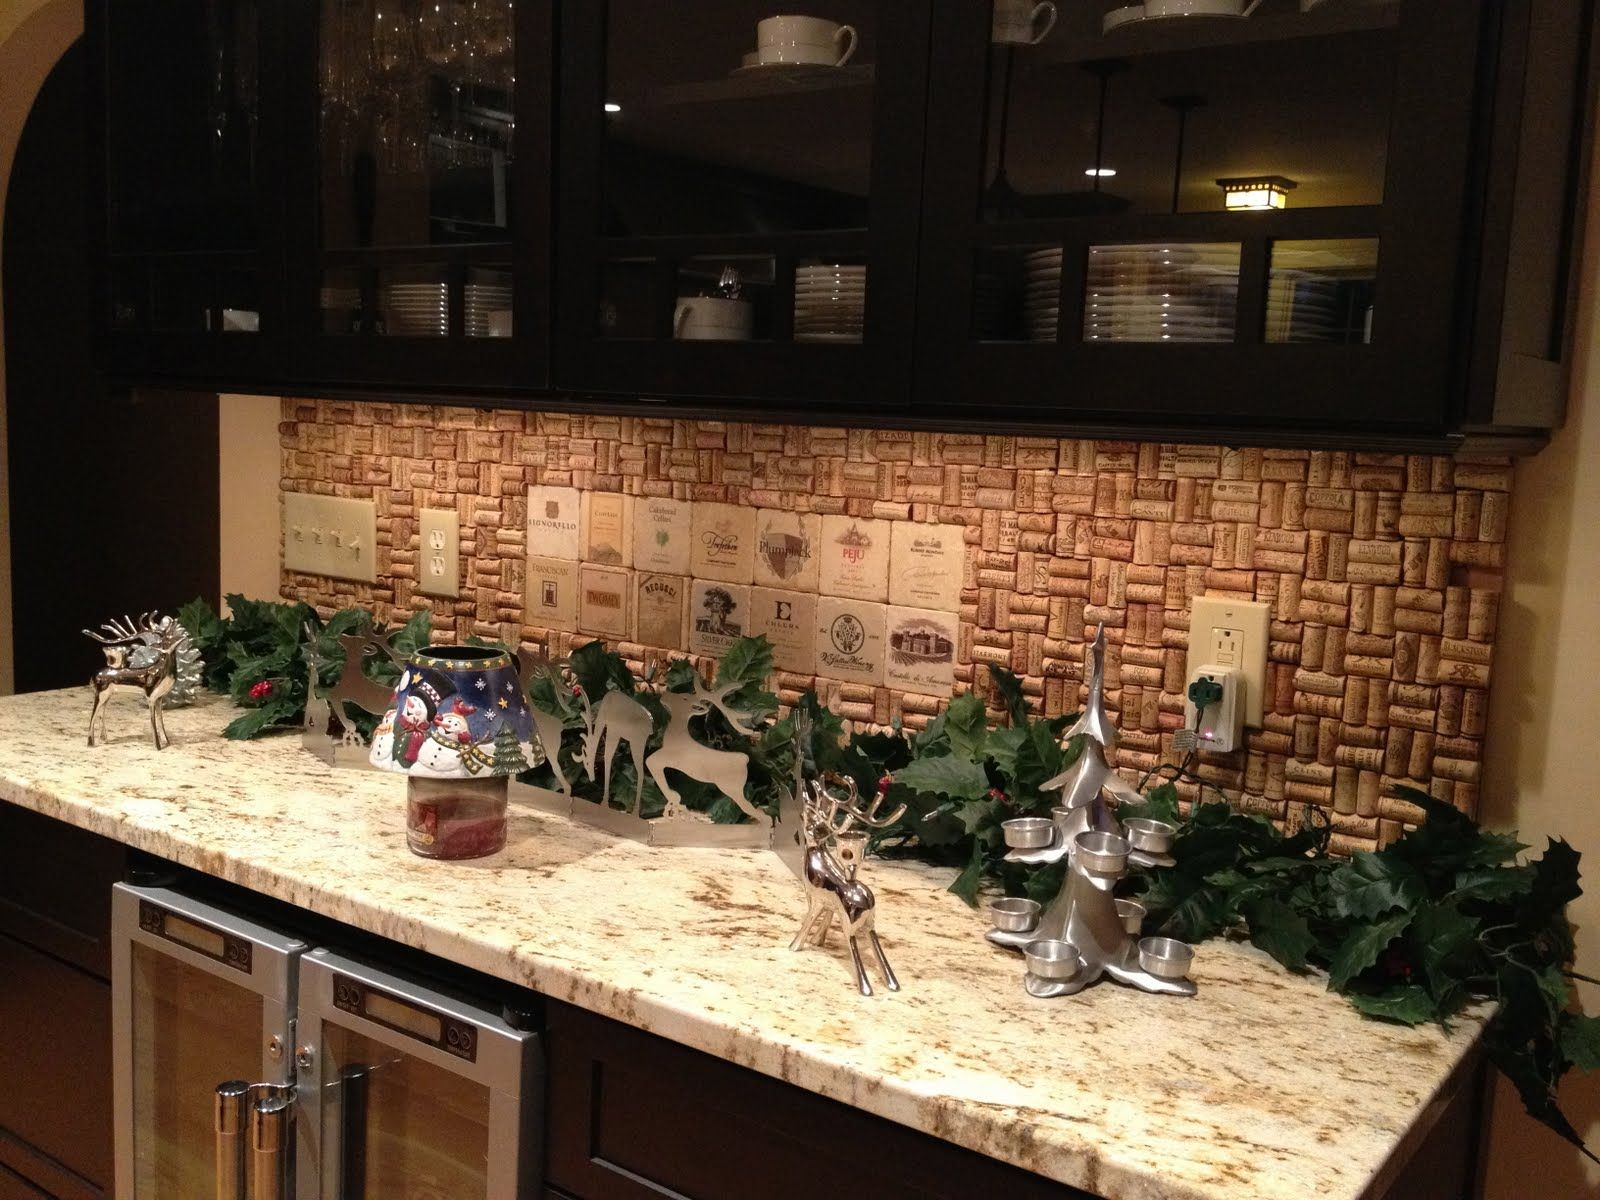 our homemade cork backsplash! tough job drinking all that